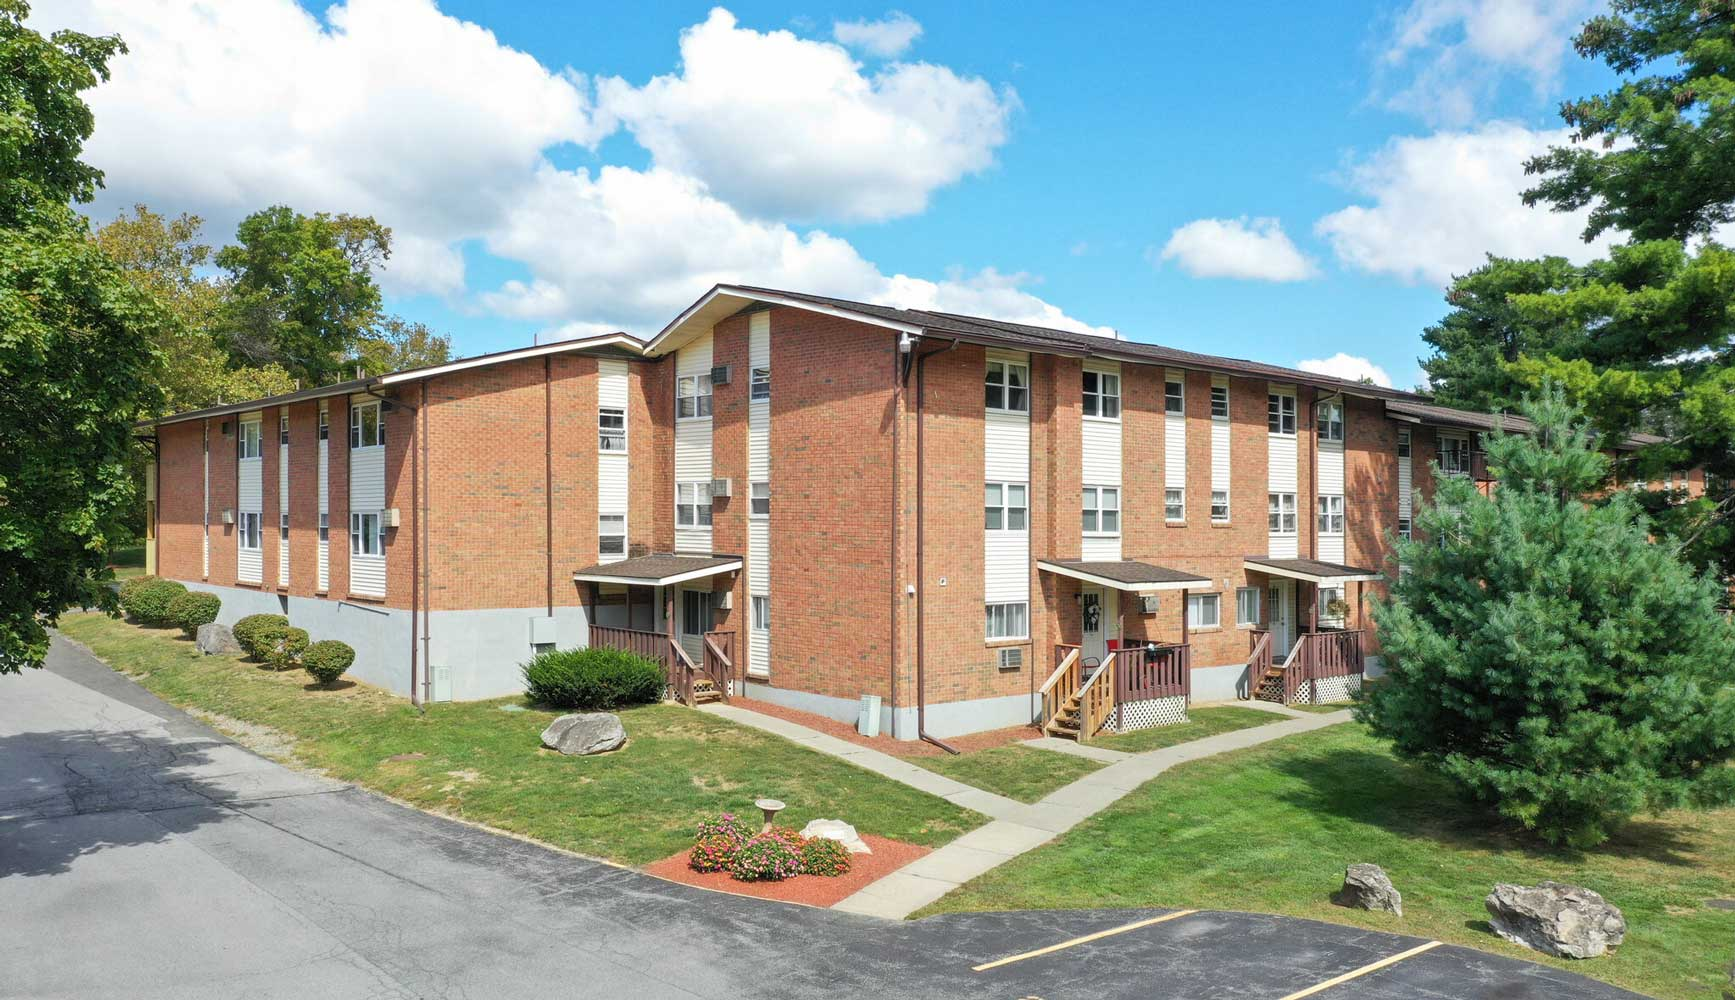 One Bedroom Apartments for Rent at Mountainview Gardens Apartments in Fishkill, NY